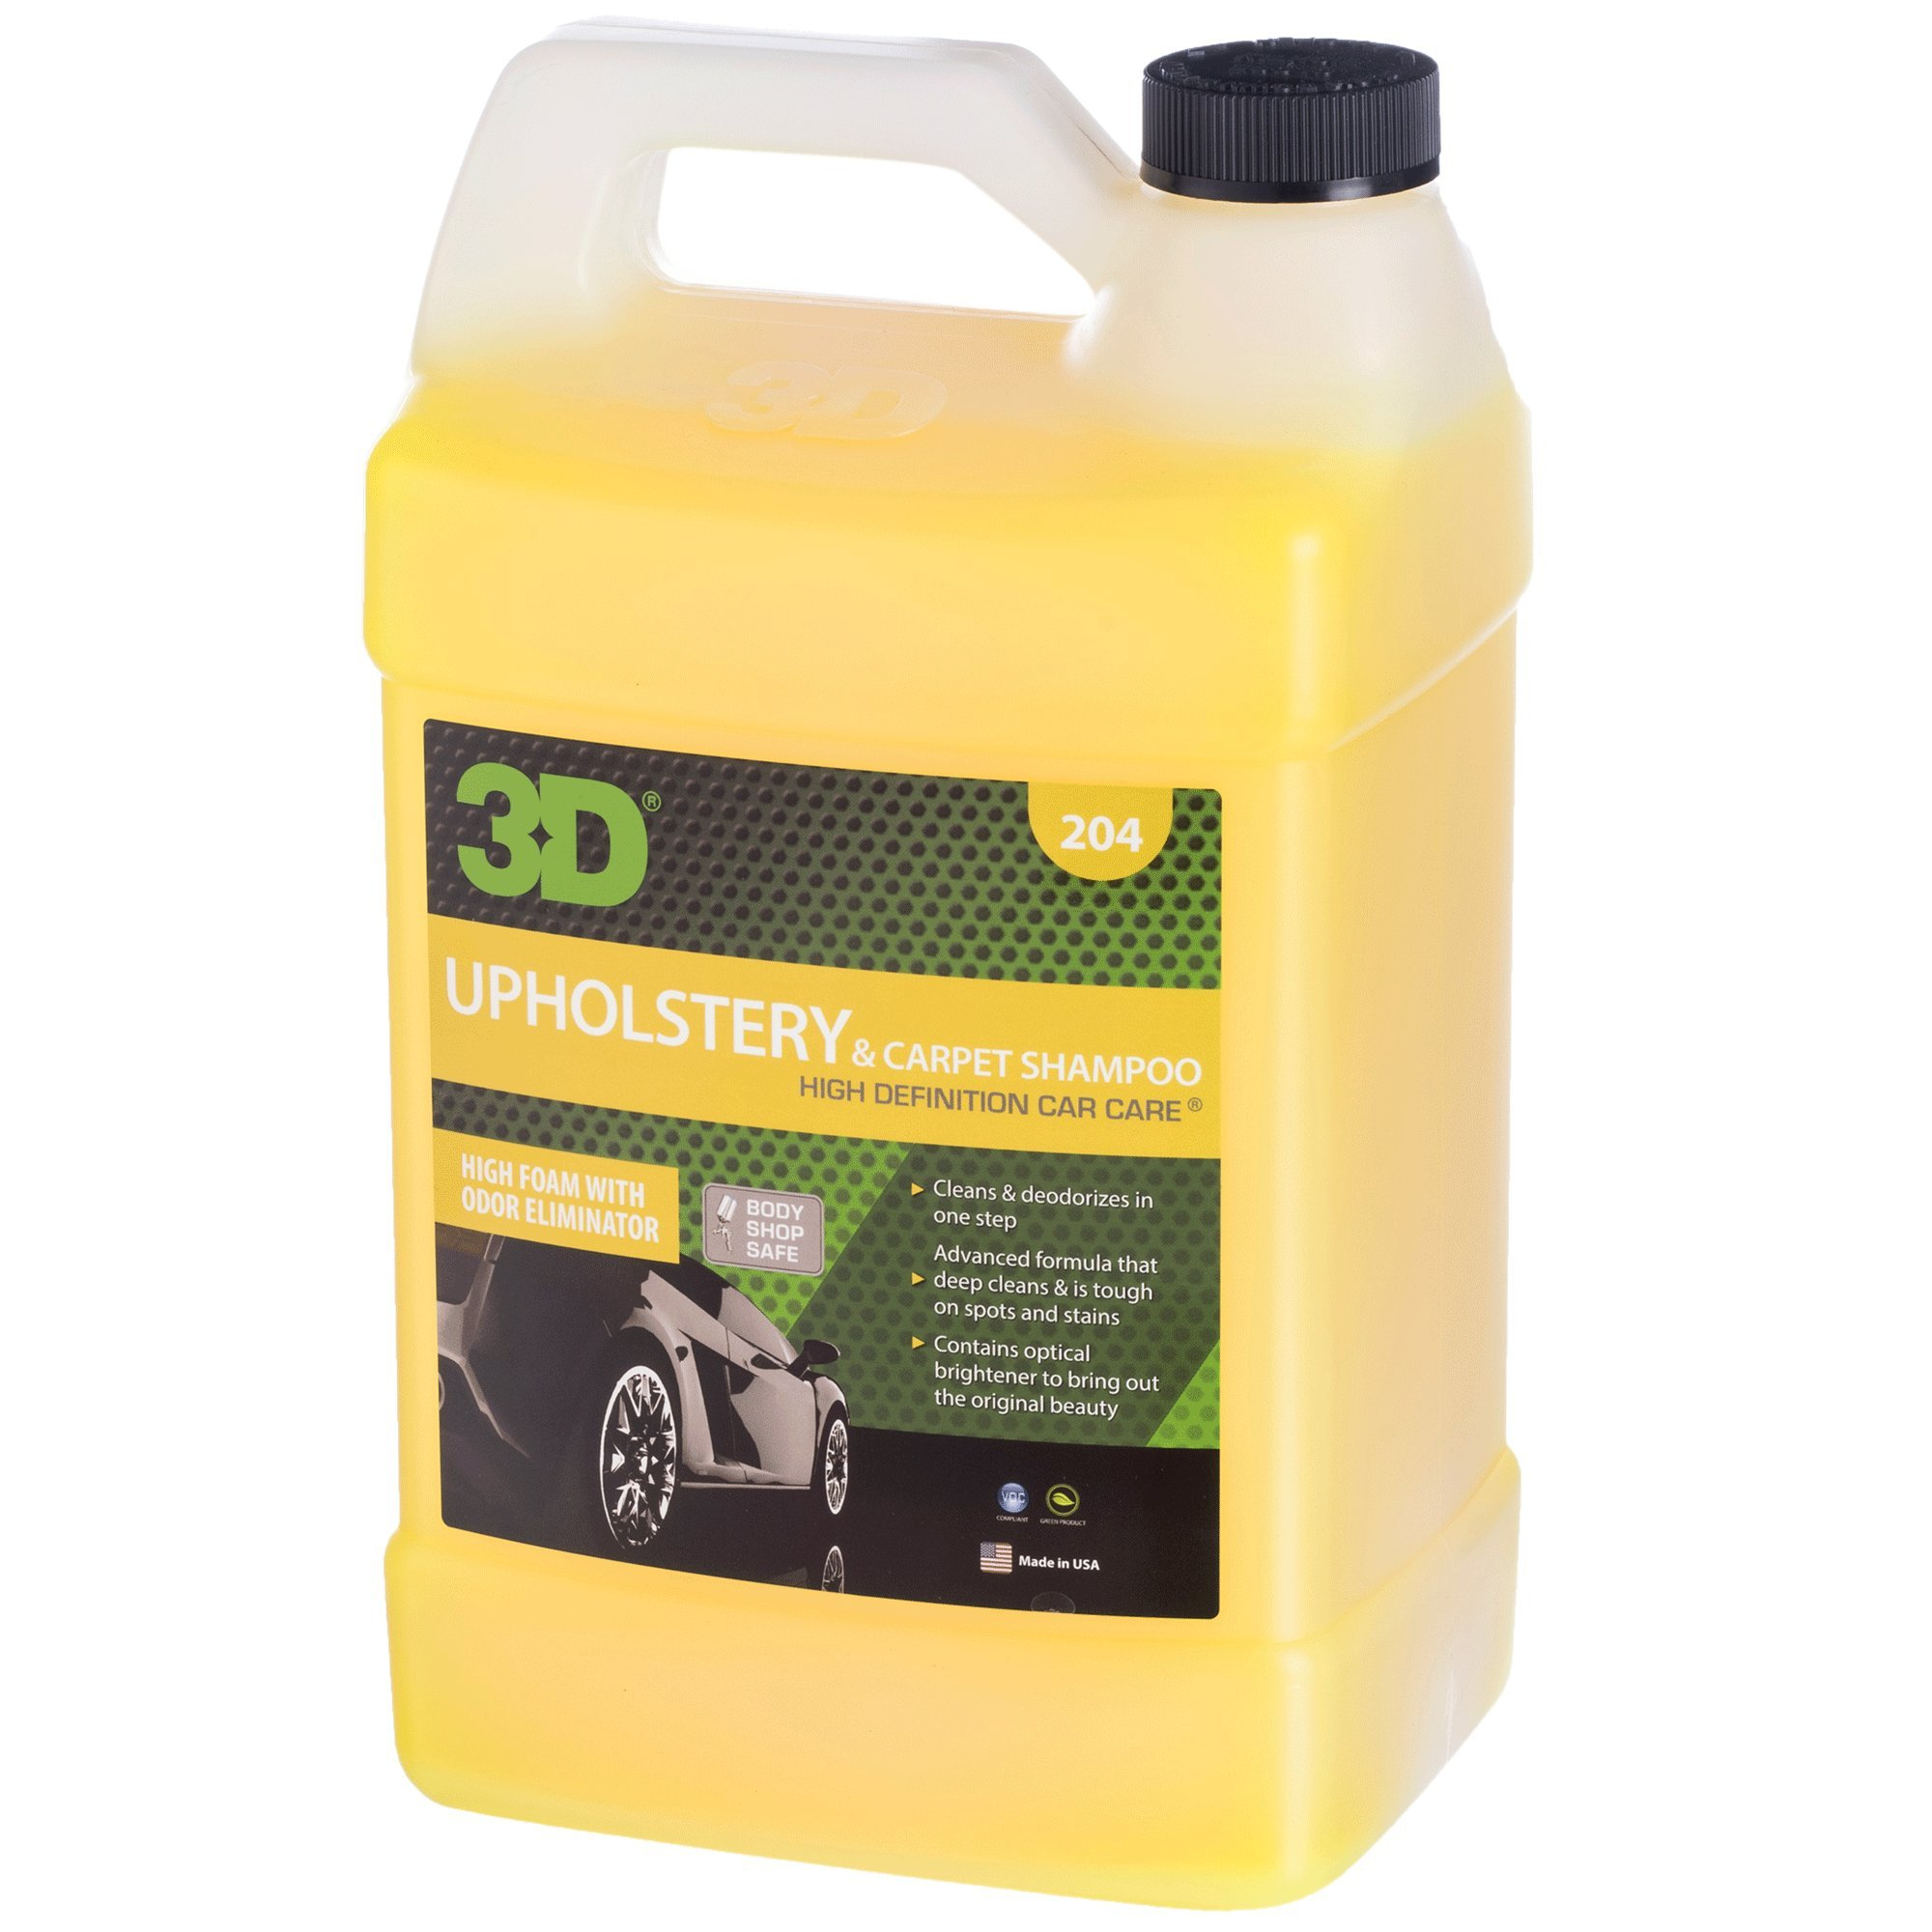 3D Upholstery & Carpet Shampoo - 1 Gallon   High Foam Stain Remover   Clean & Deoderize   Odor Eliminator   Made in USA   All Natural   No Harmful Chemicals